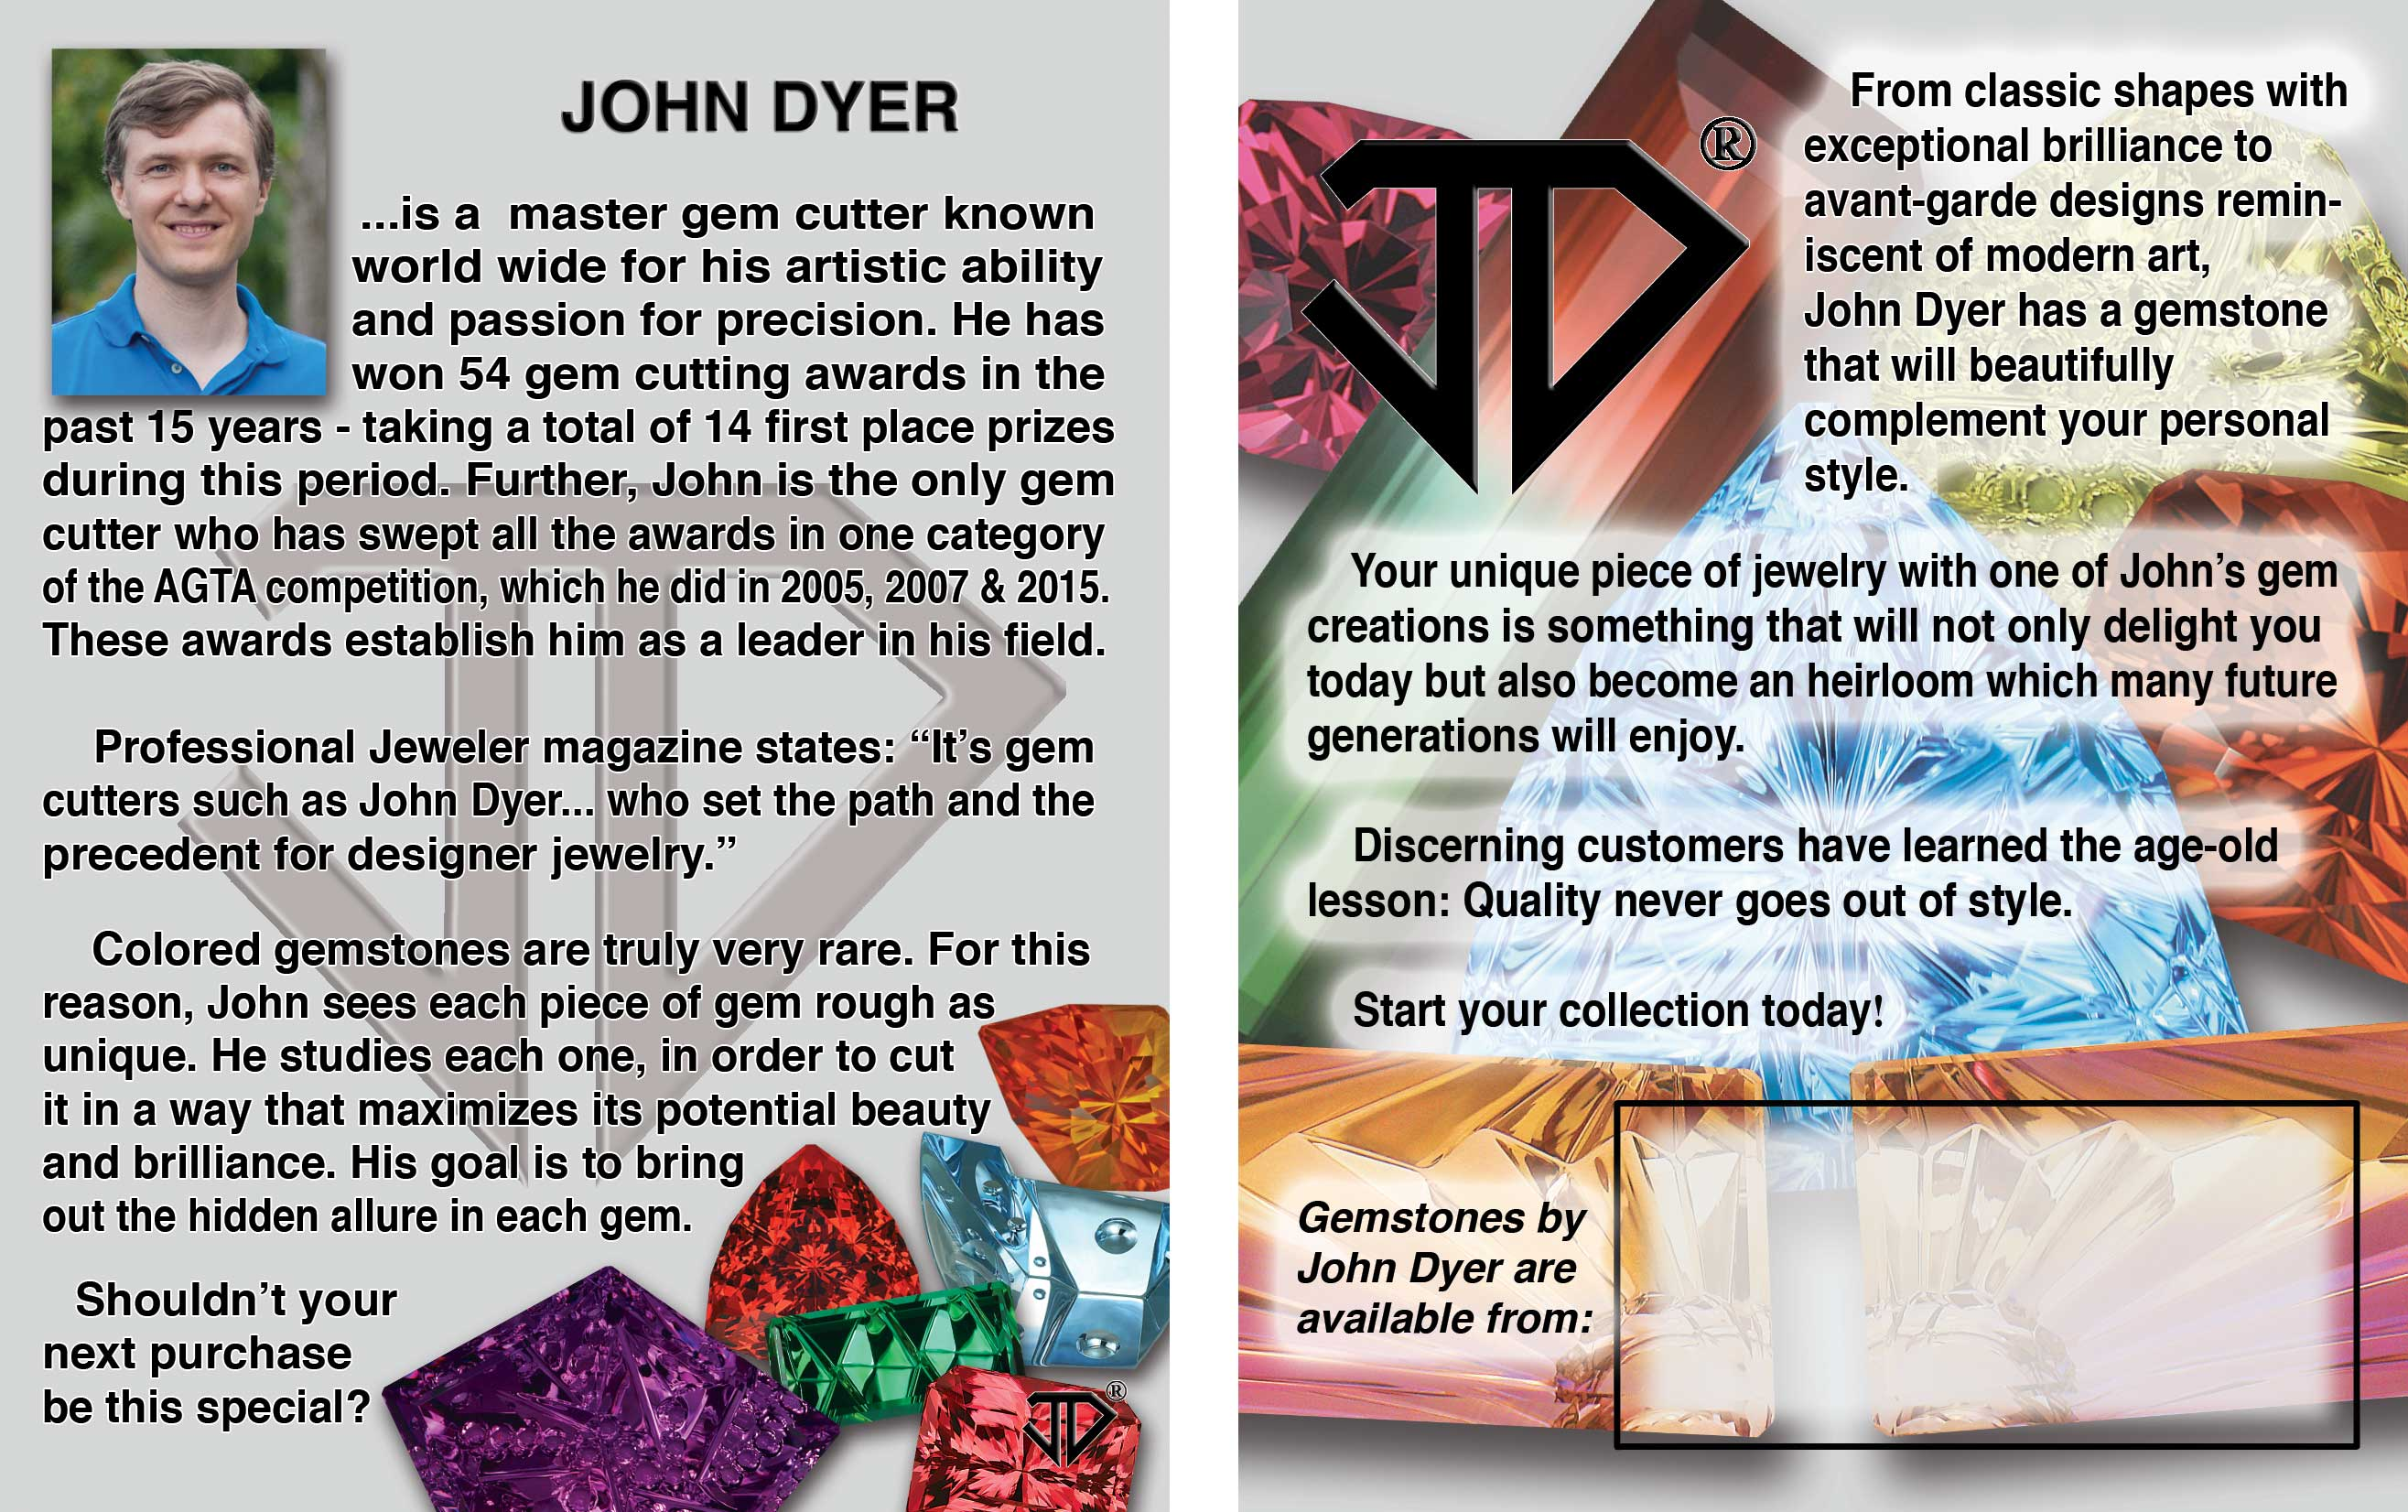 John Dyer bio card information